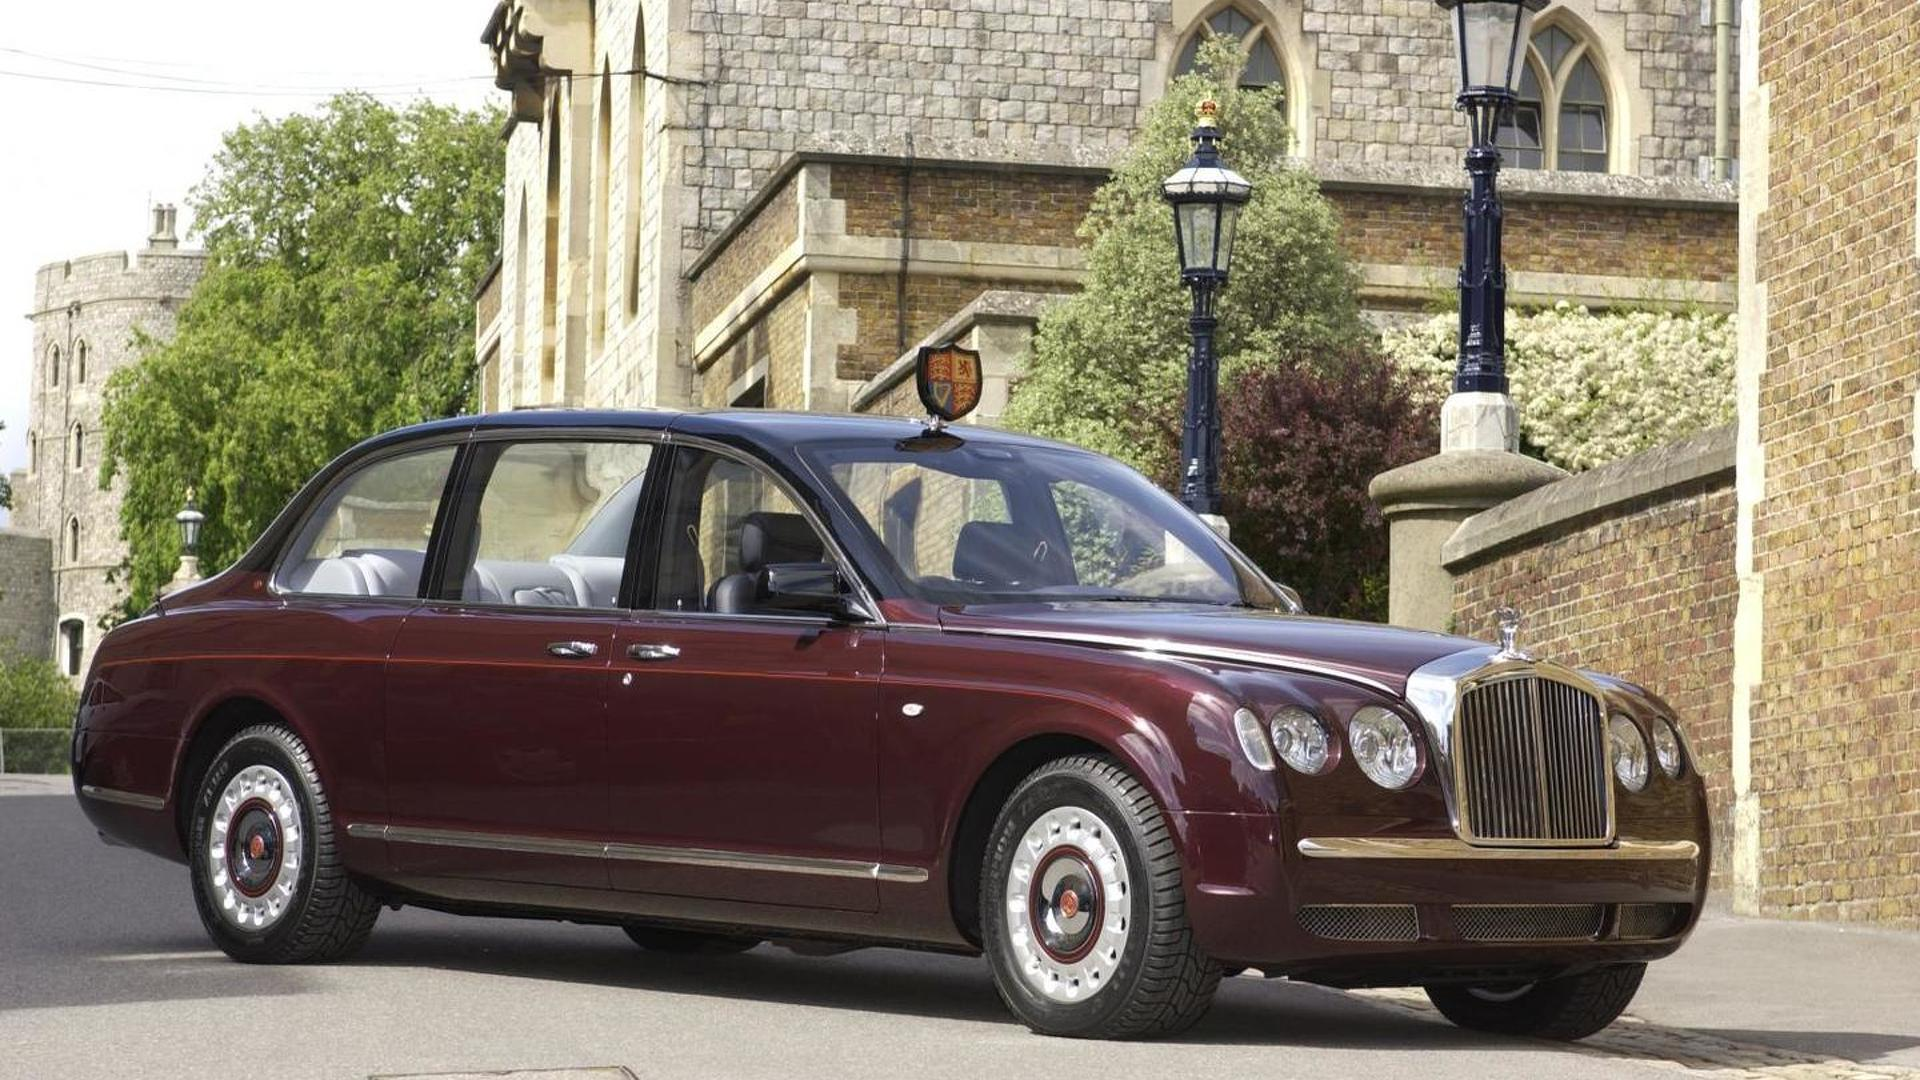 Queen's Bentley State Limousine to be showcased in Buckingham Palace Gardens